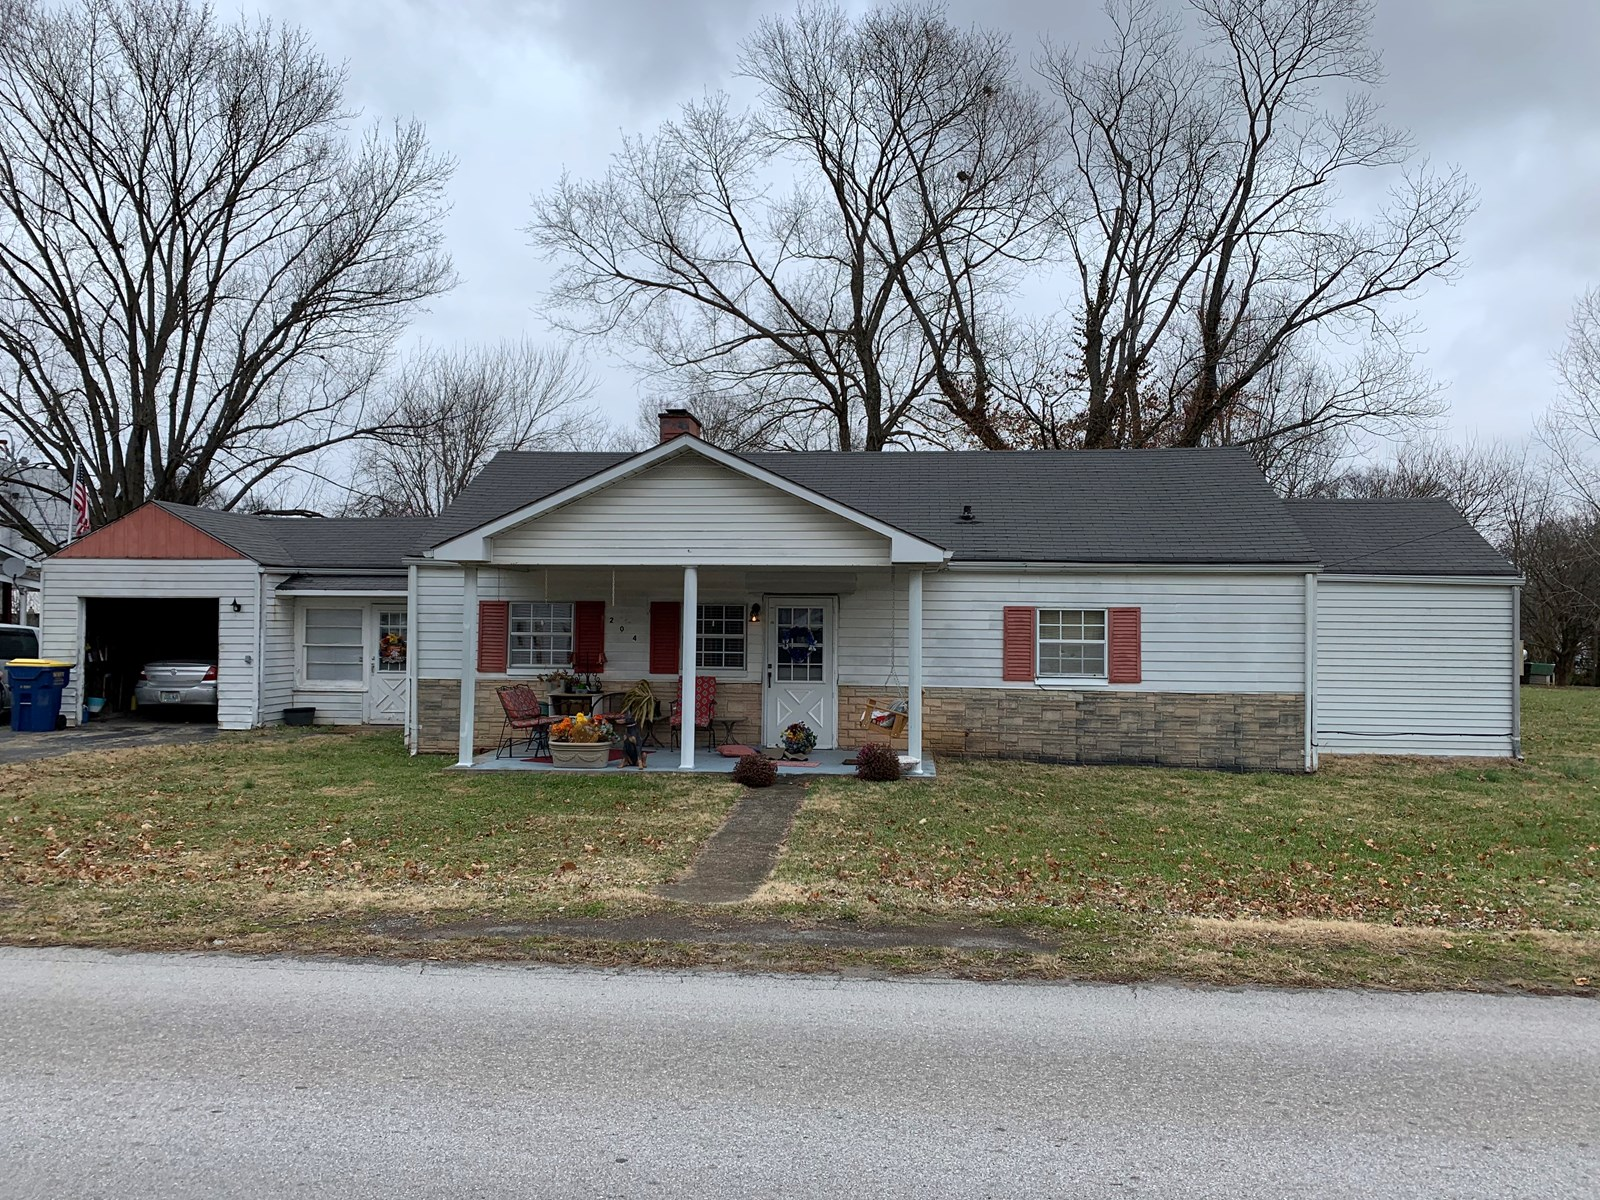 4 Bedroom one bath home for sale in Auburn Ky.